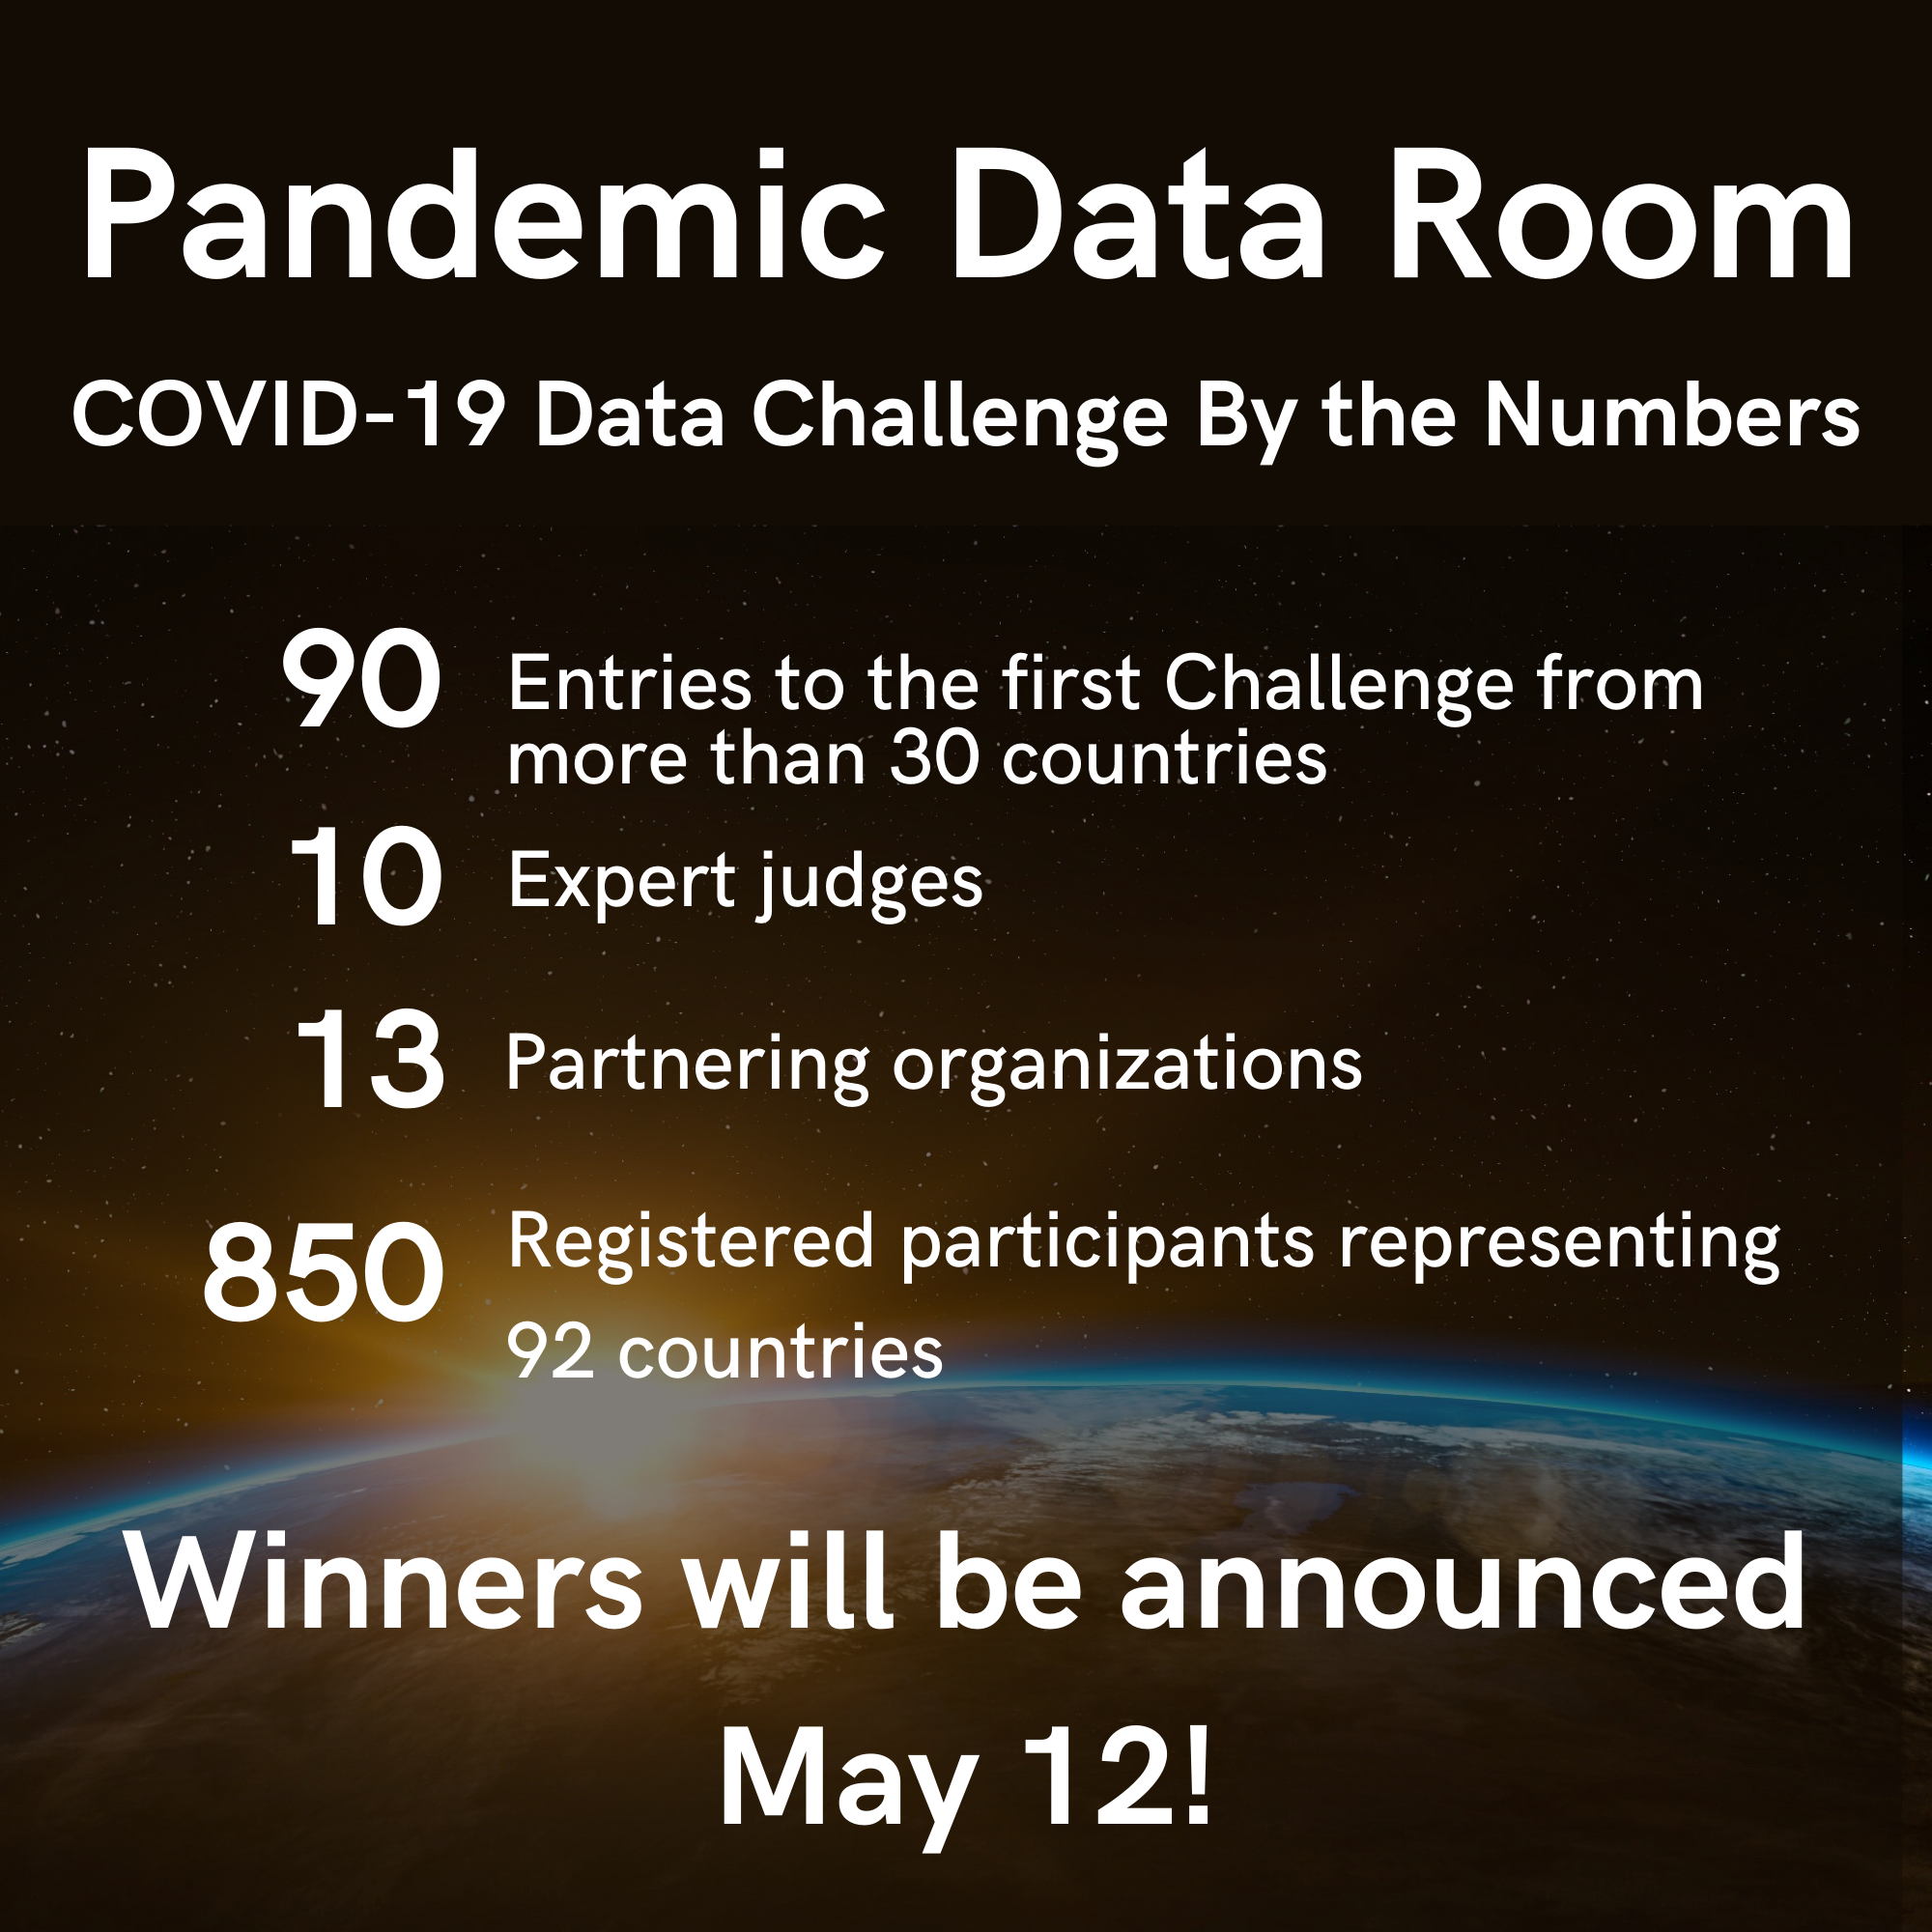 Details on first data challenge